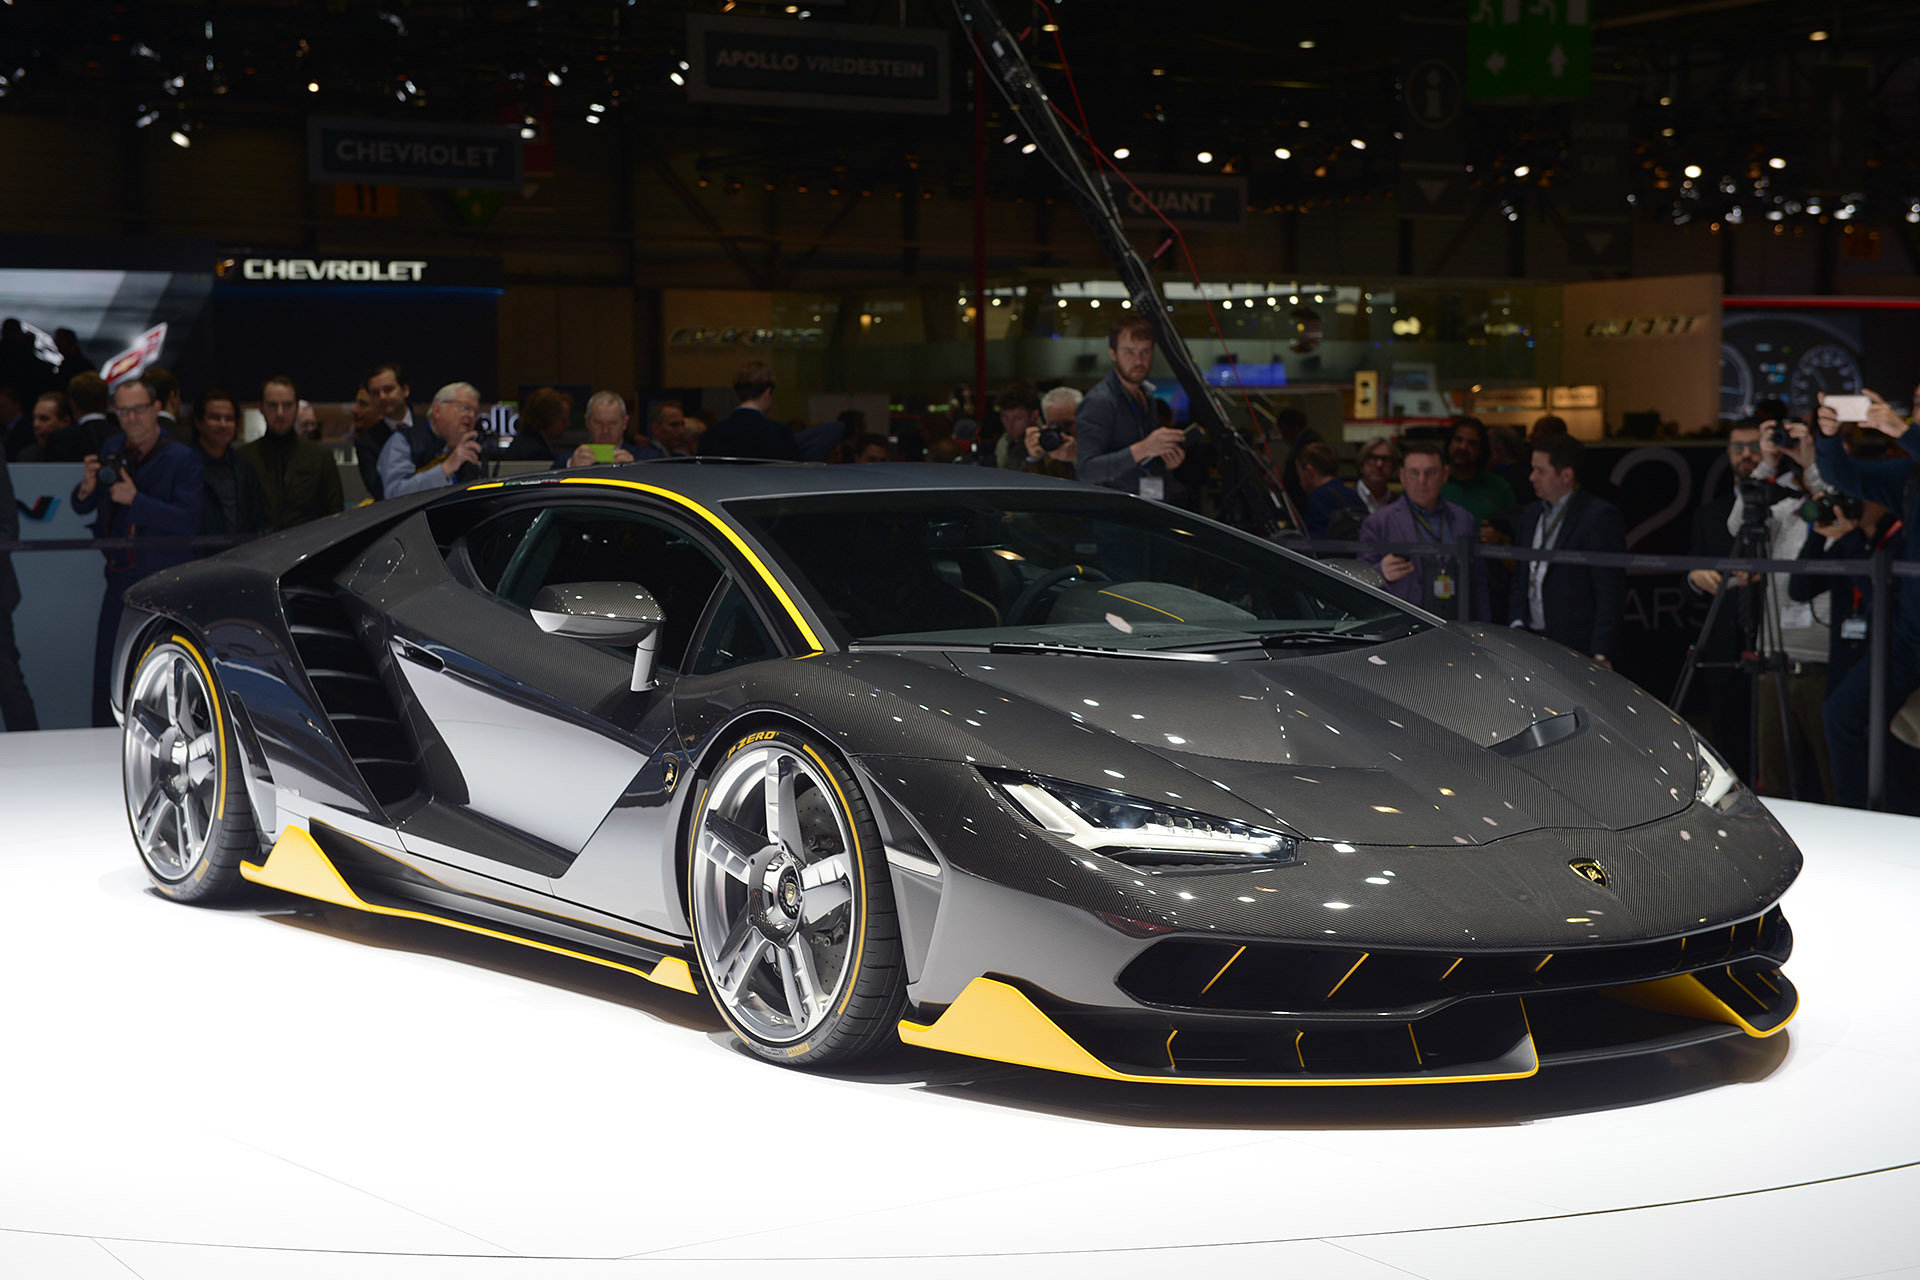 Ten Super Cars Revealed At The 2016 Geneva Motor Show That You Must